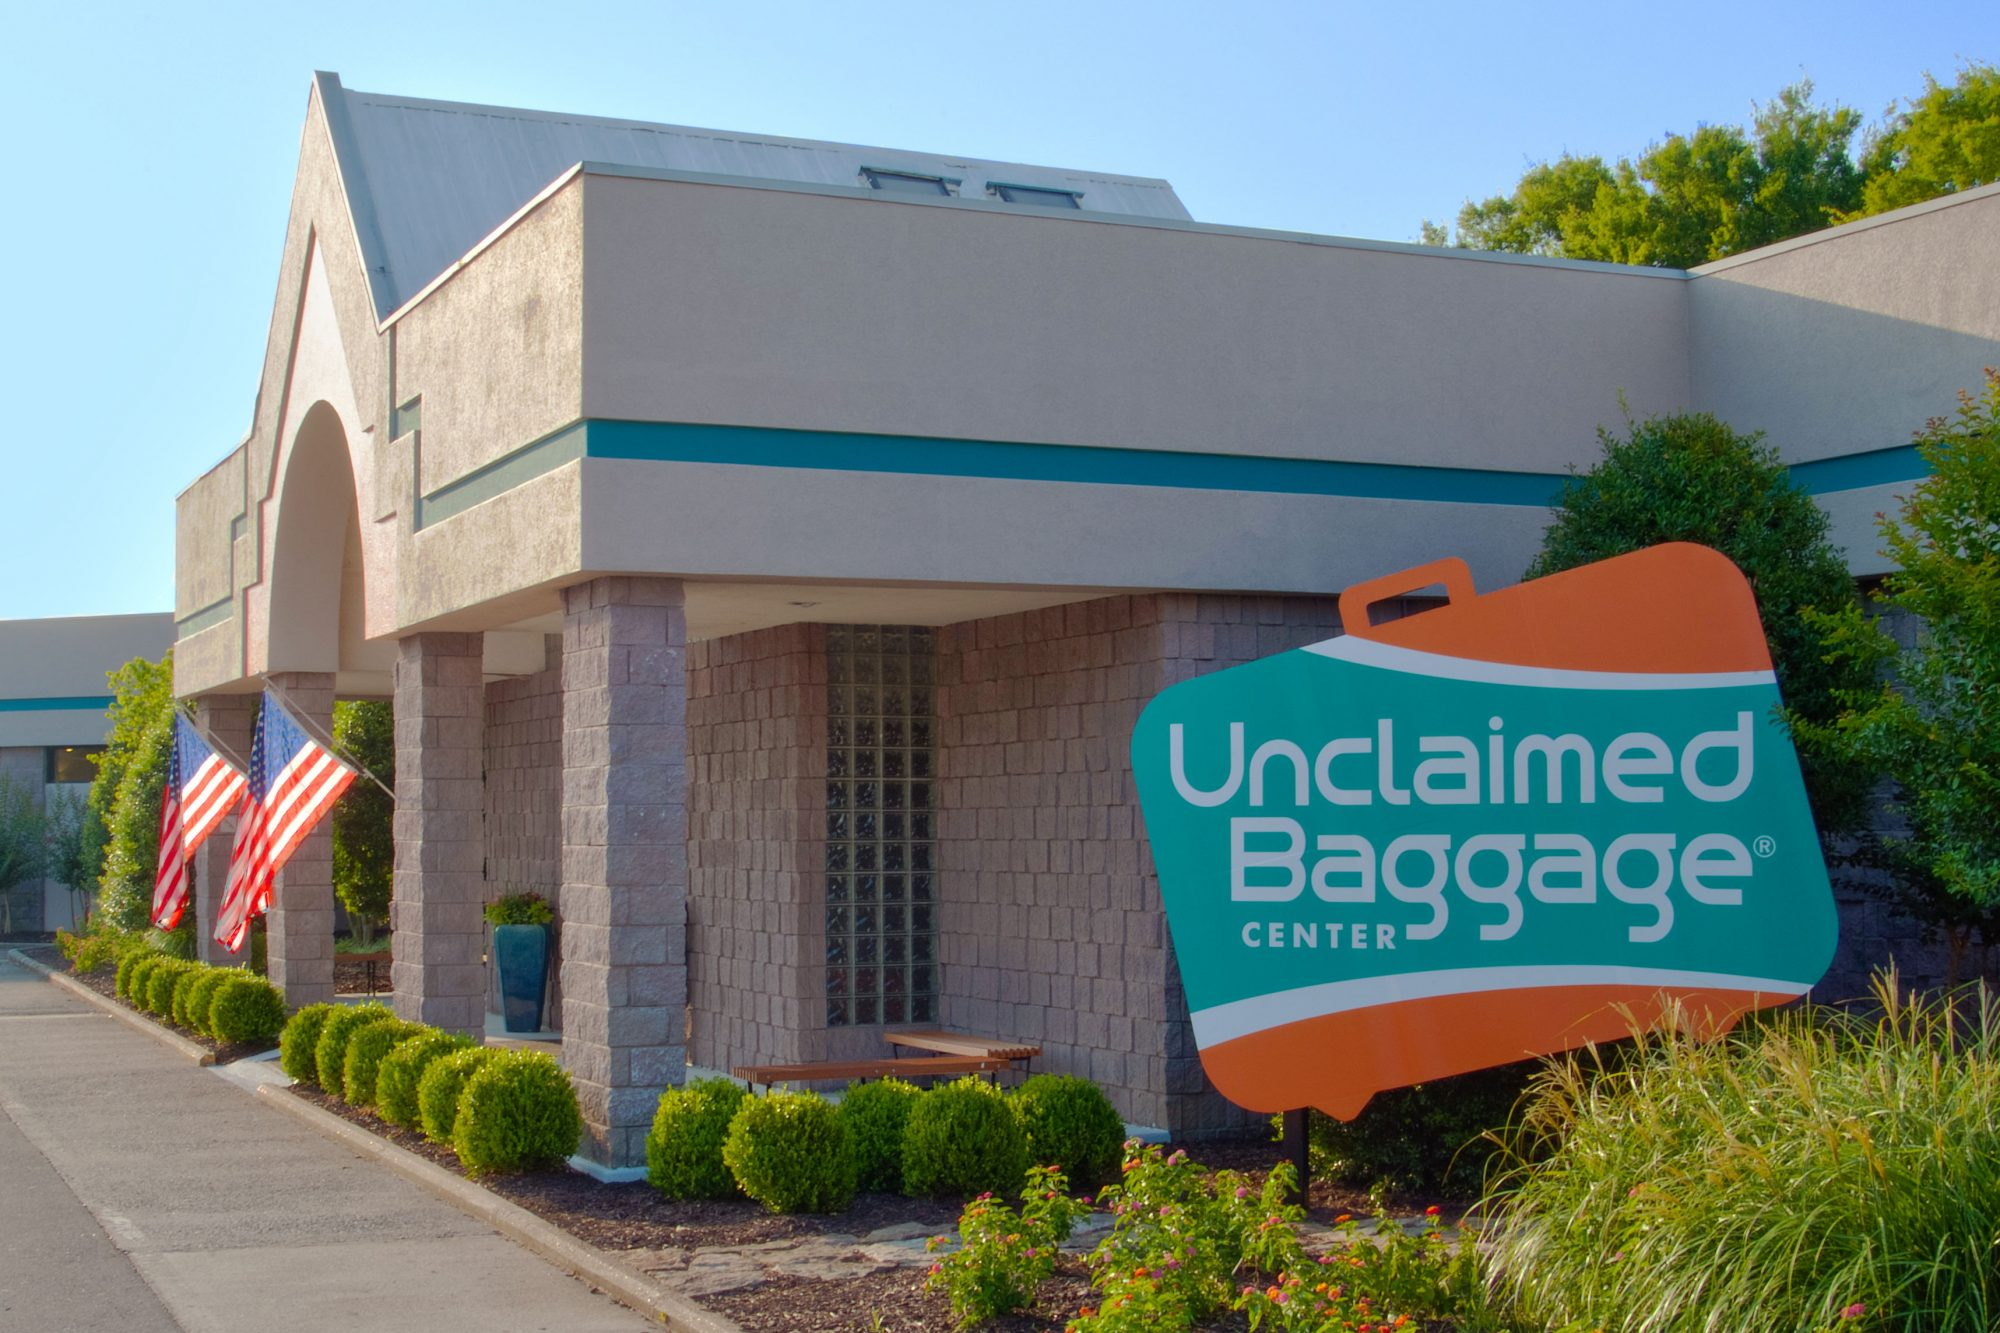 Unclaimed Baggage Center in Scottsboro, AL